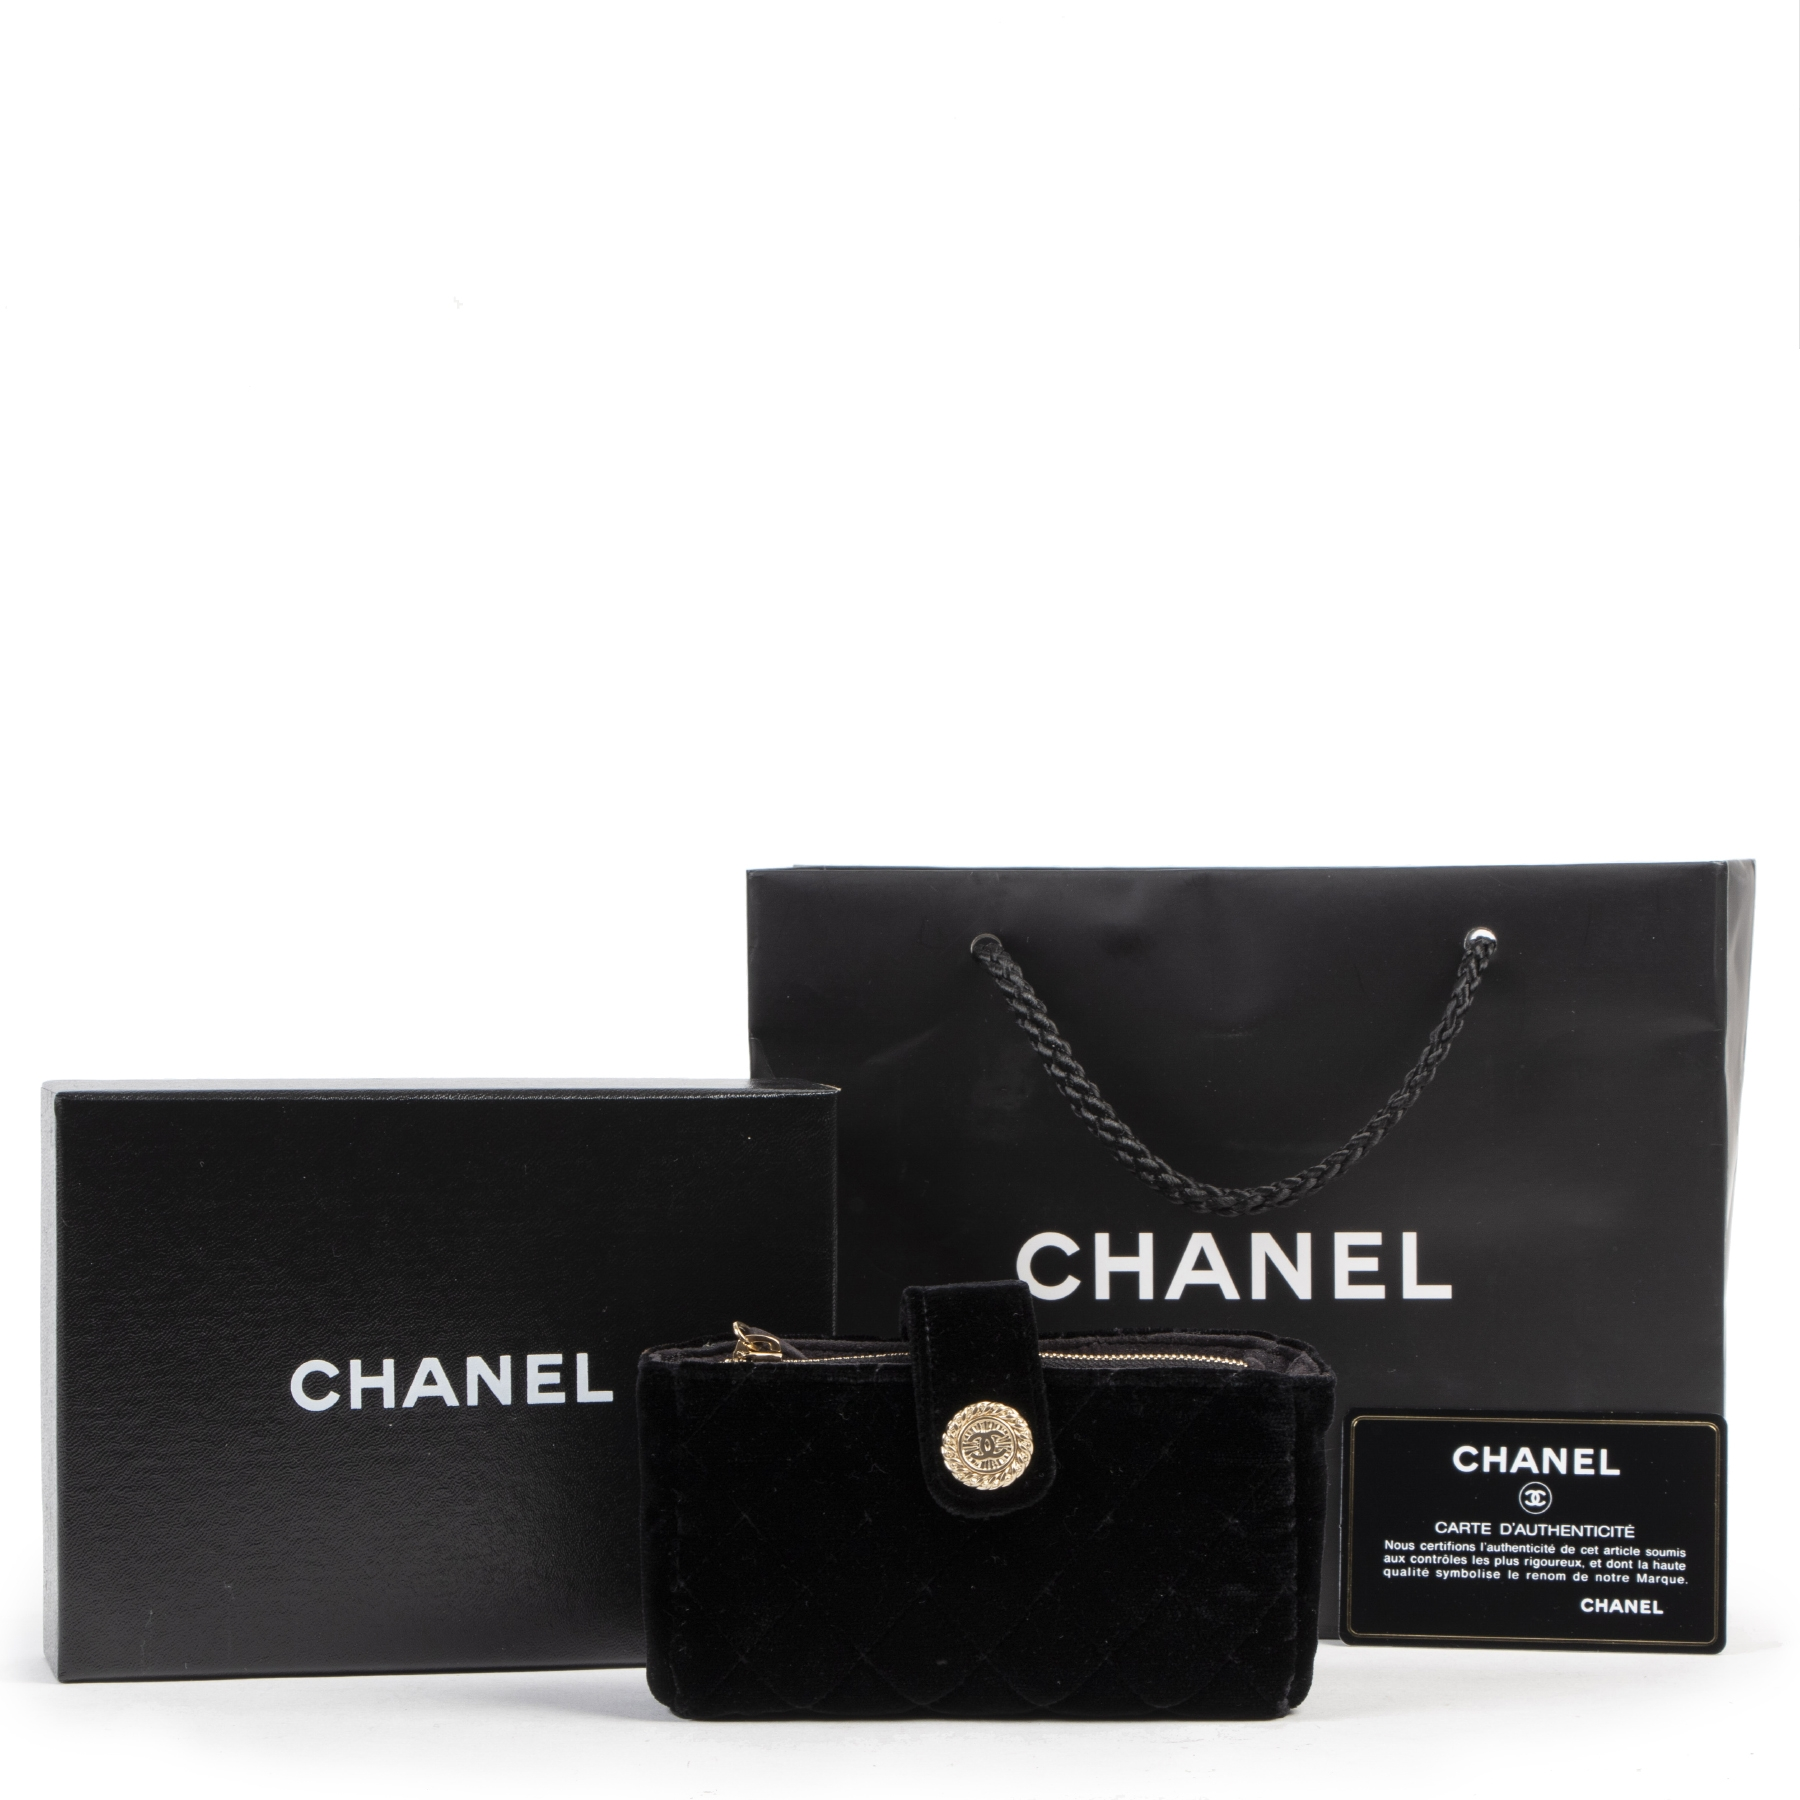 Authentique seconde-main vintage Chanel Black Velvet Wallet achète en ligne webshop LabelLOV